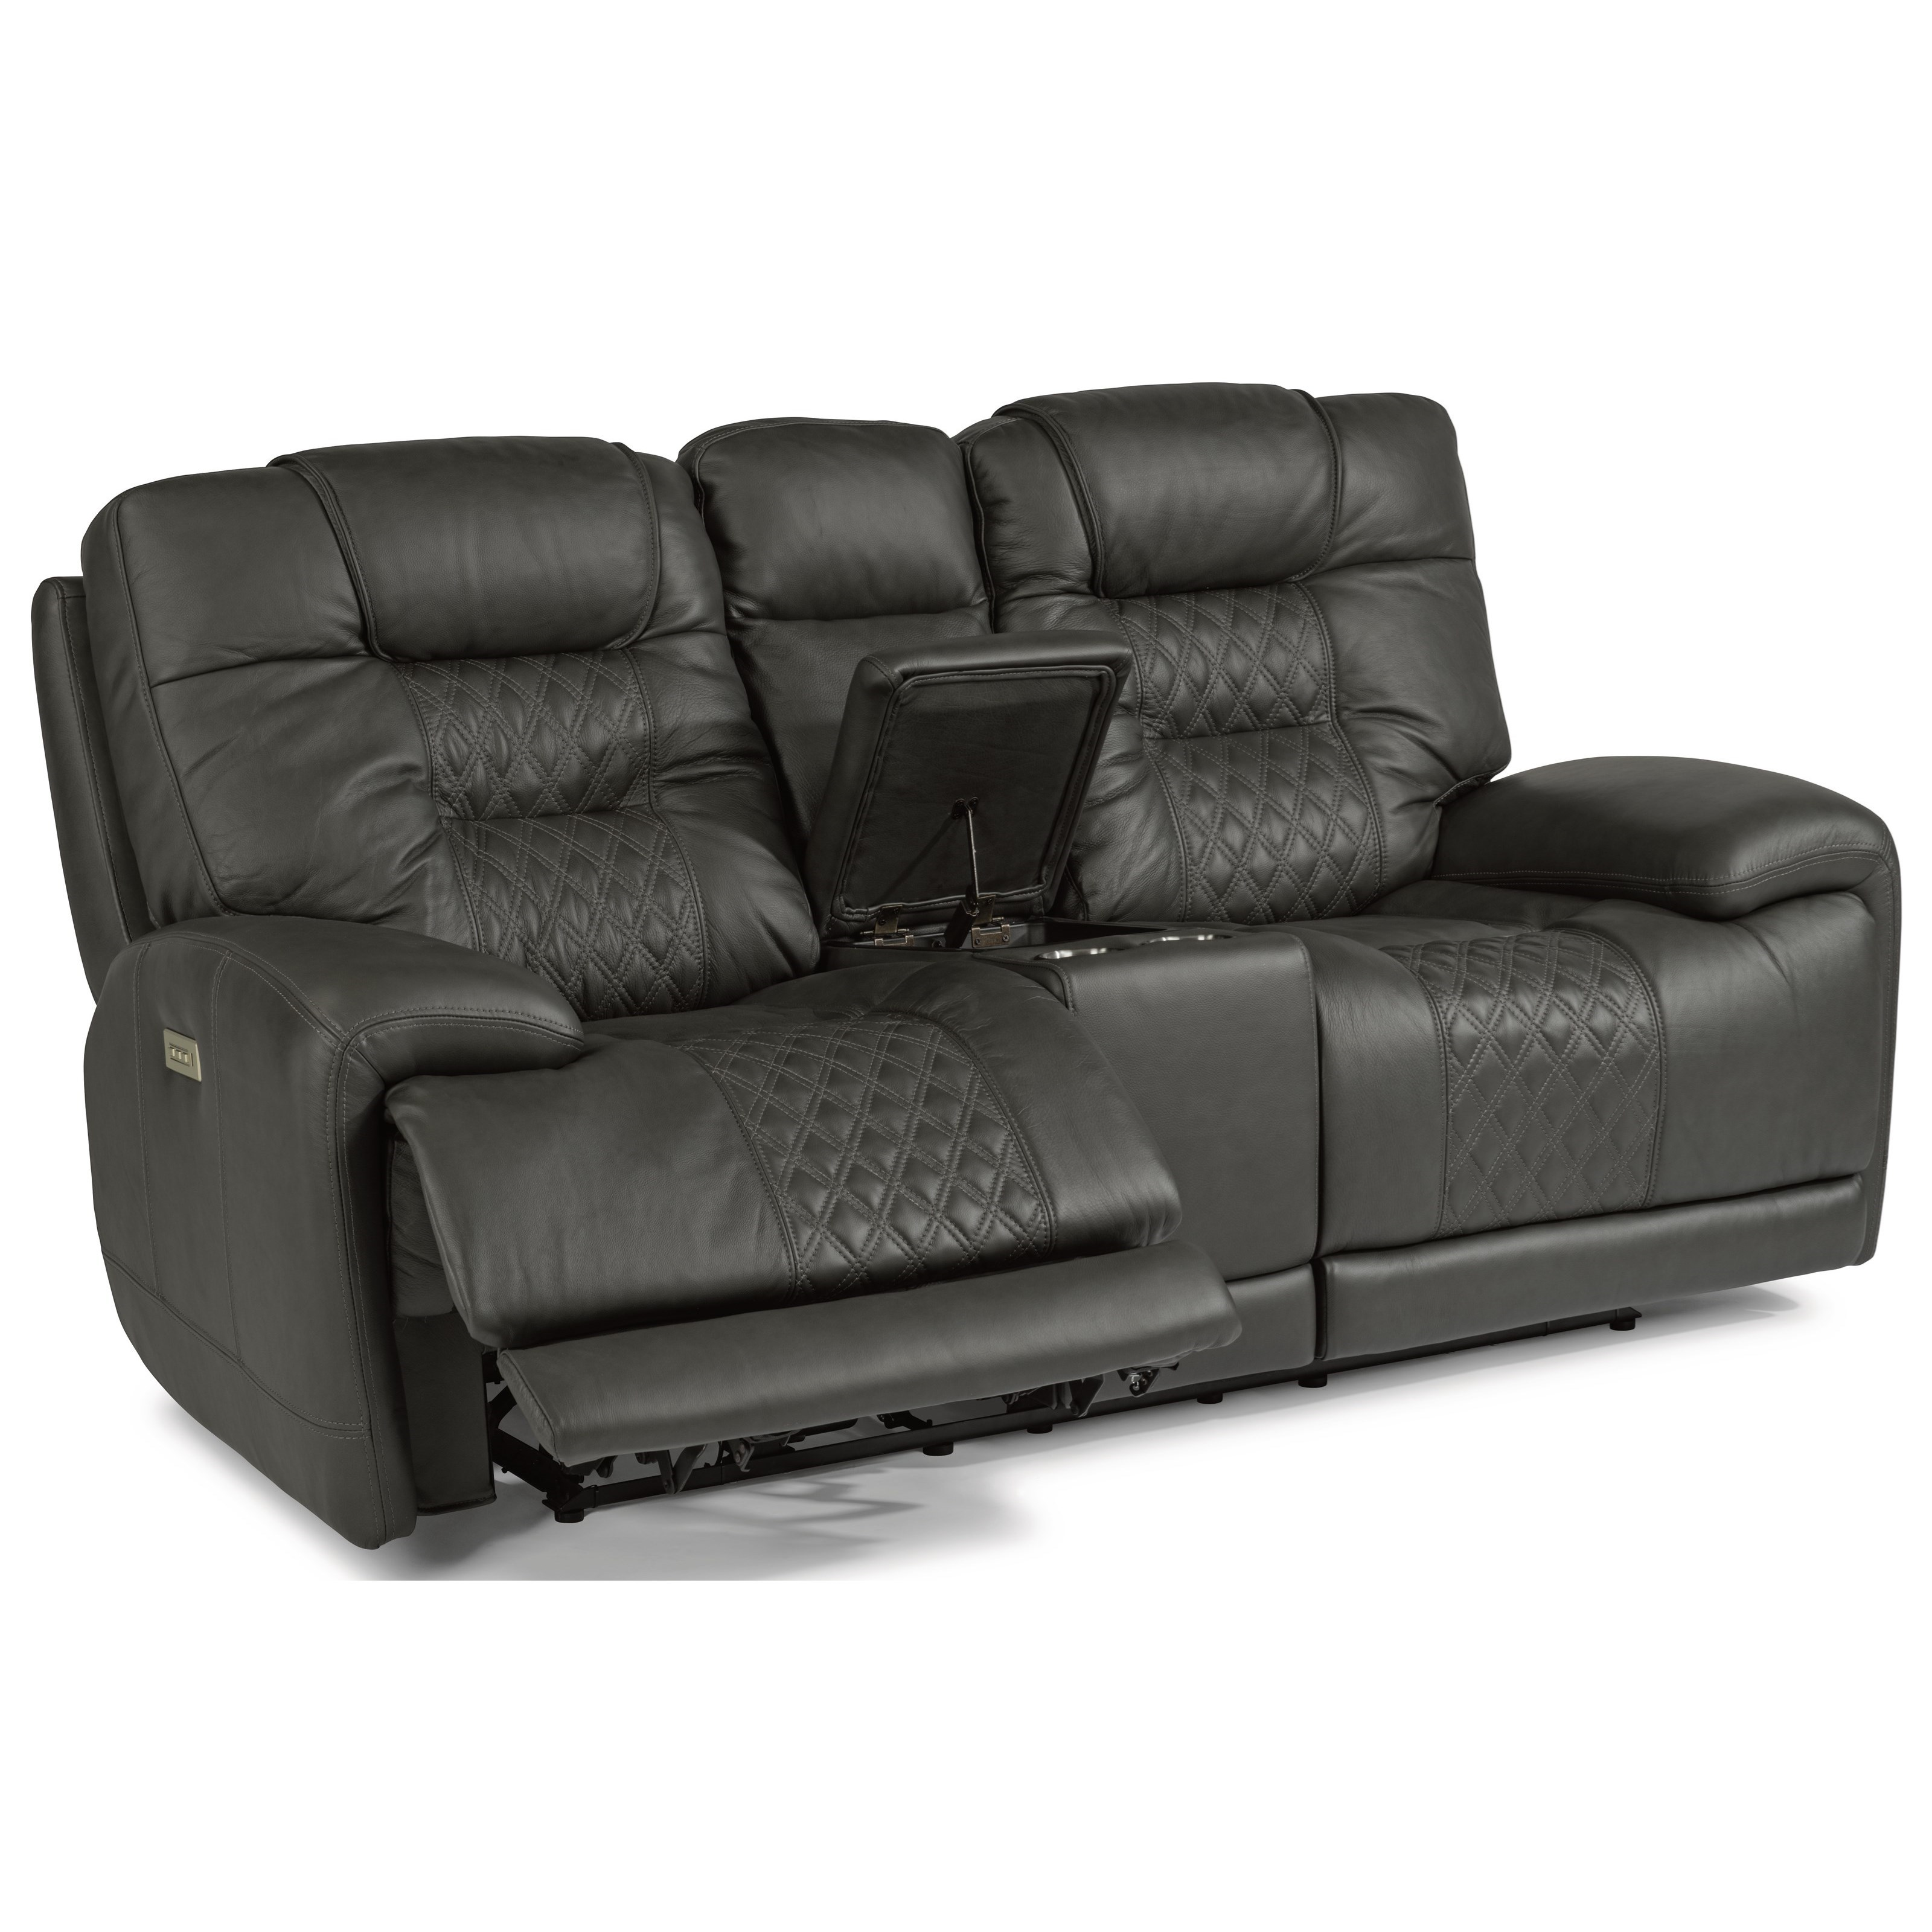 Latitudes - Royce Power Reclining Loveseat with Console by Flexsteel at Walker's Furniture